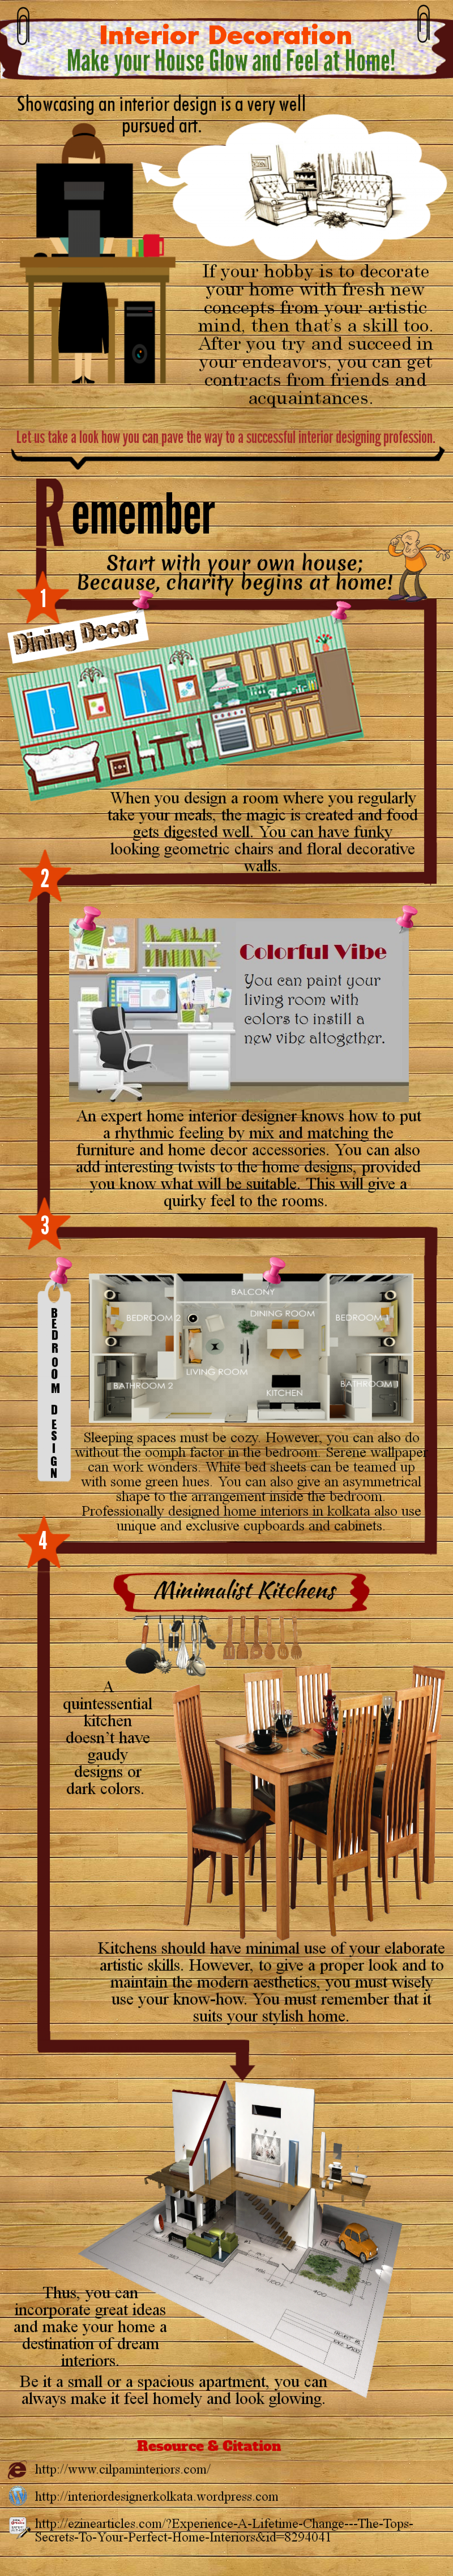 Interior Decorationn Make Your House Glow and Feel At Home Infographic